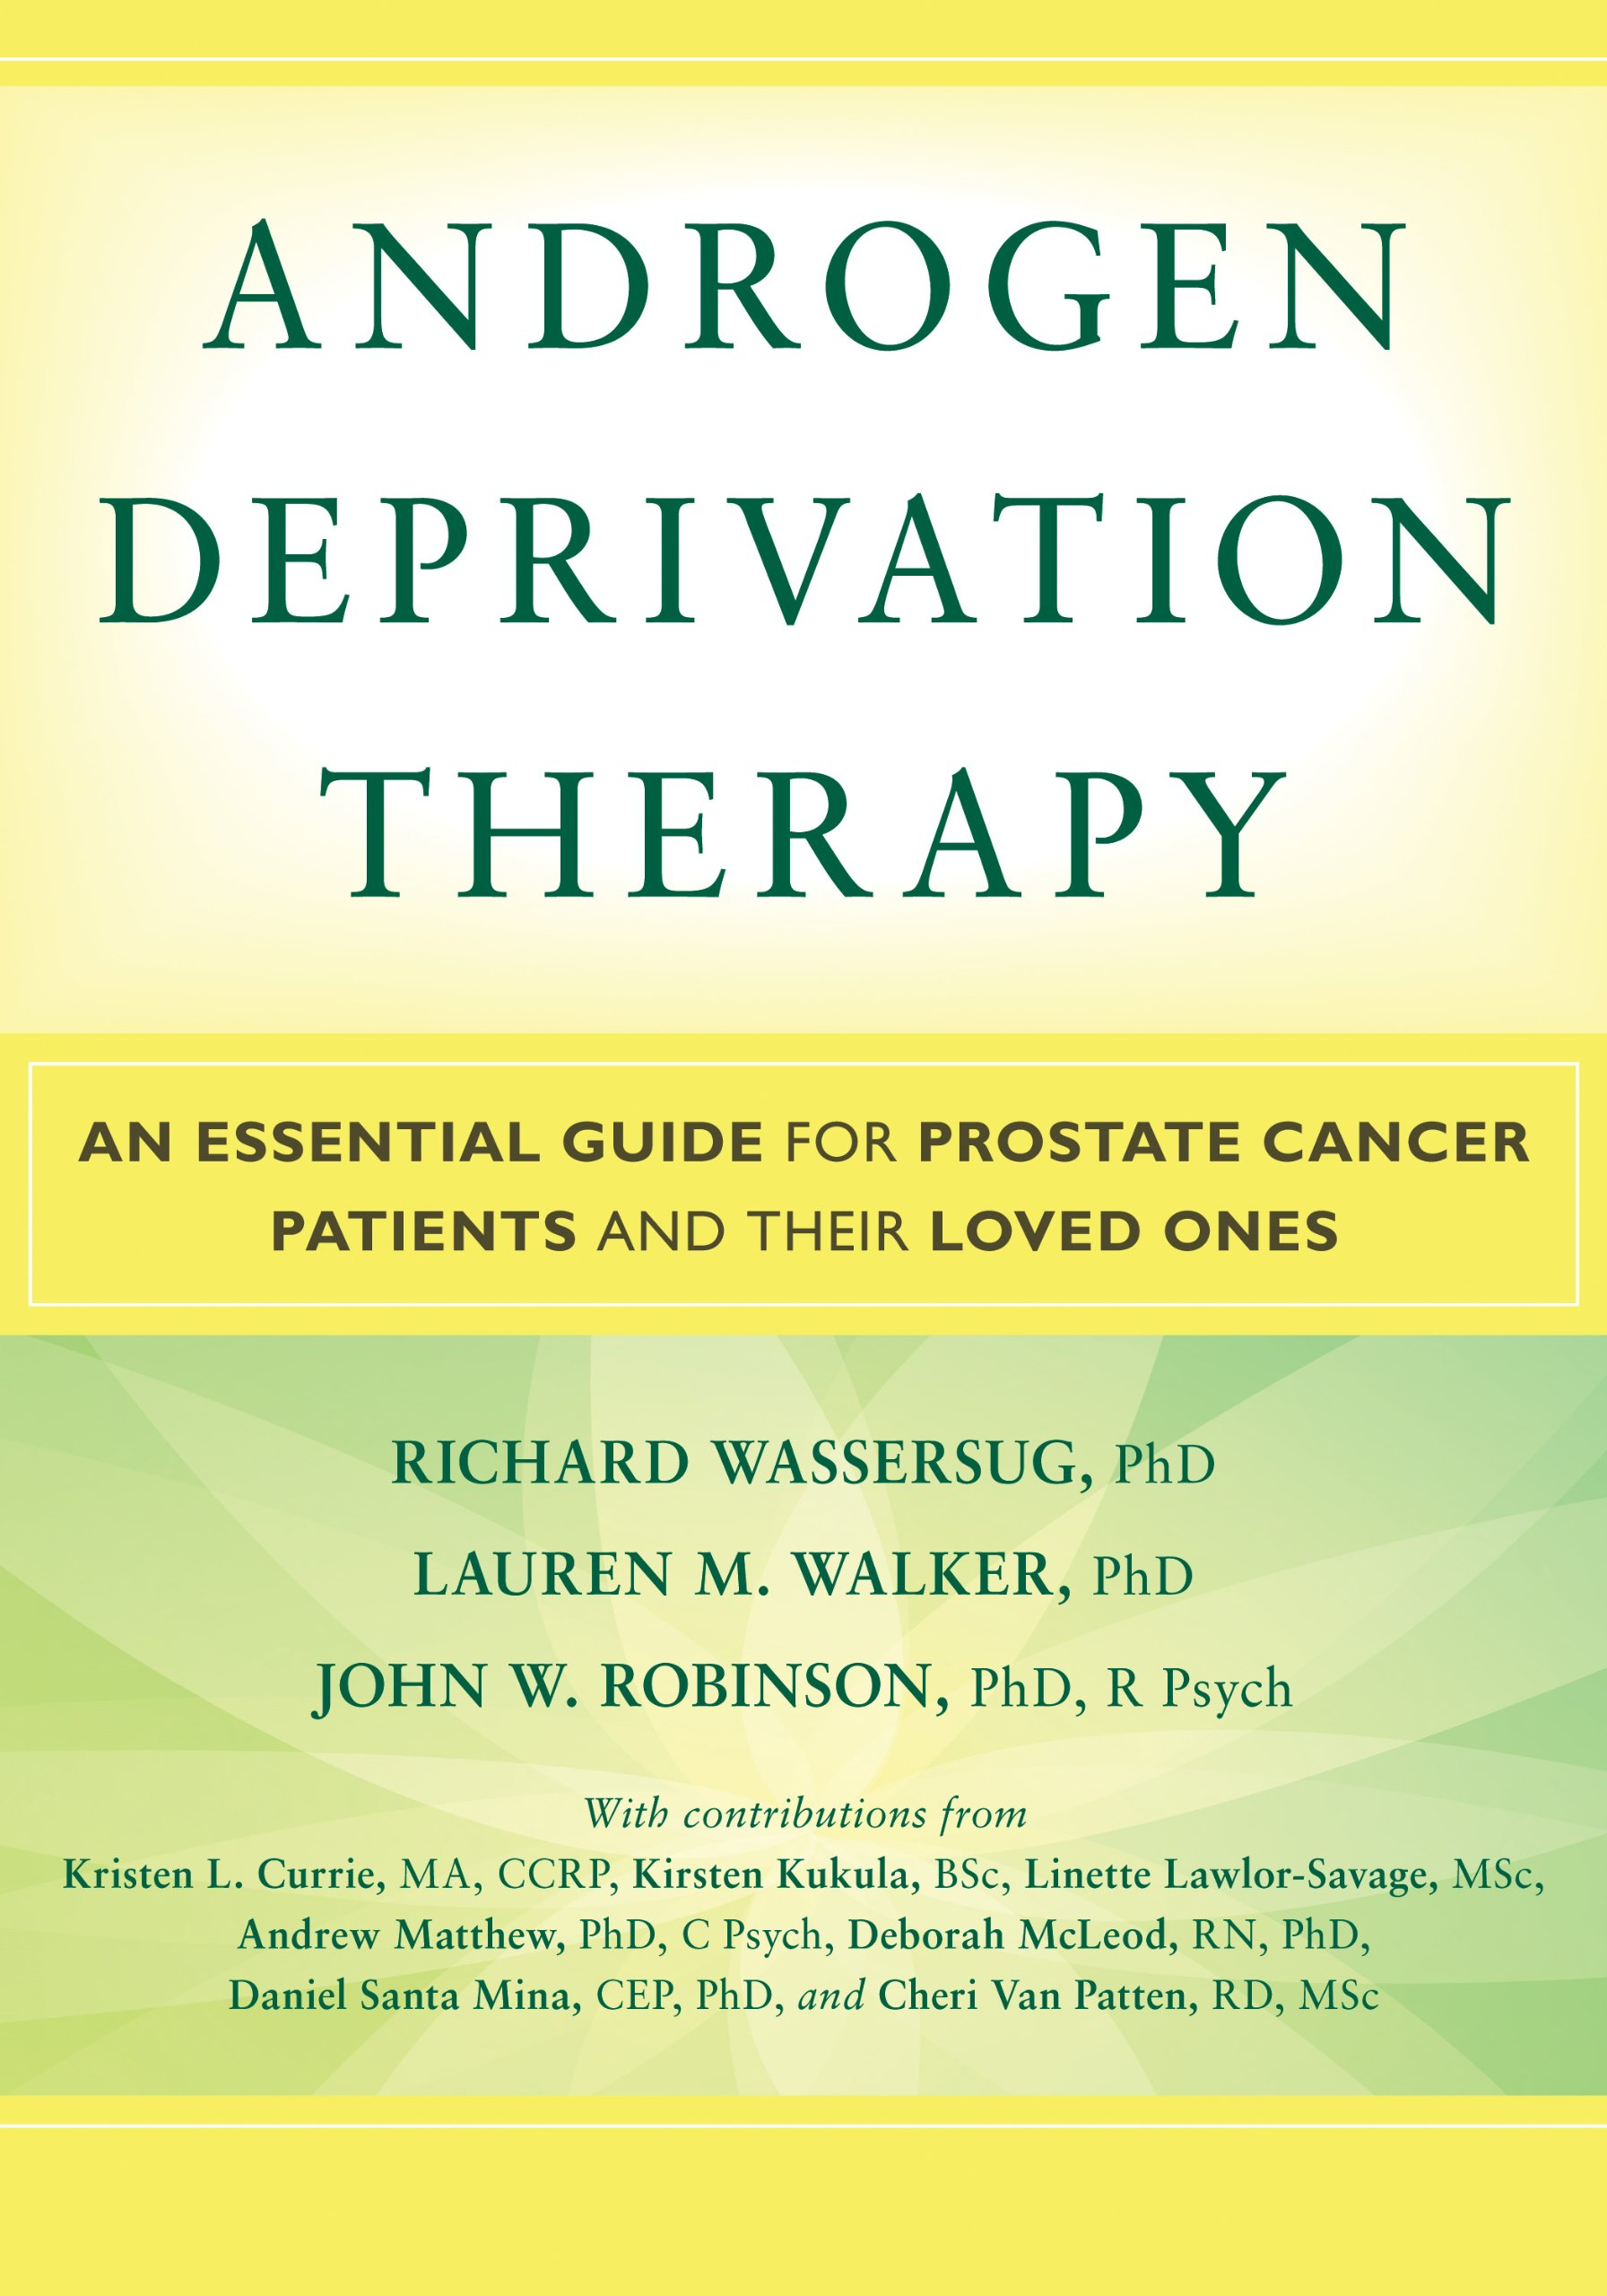 Androgen Deprivation Therapy: An Essential Guide for Prostate Cancer  Patients and Their Loved Ones: Richard J. Wassersug PhD, Lauren Walker PhD,  ...